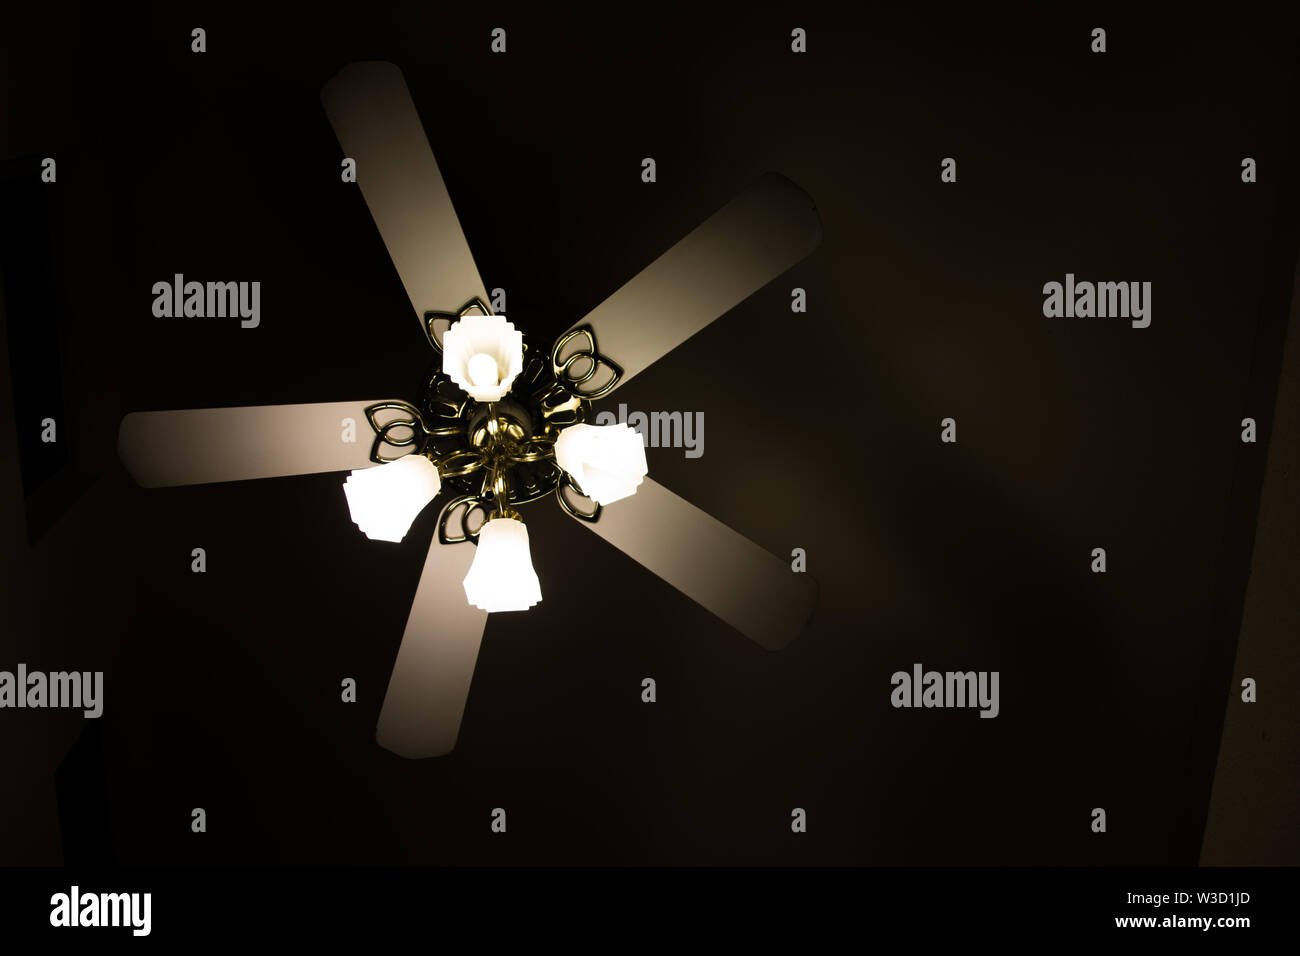 Ceiling fan with lights in the dark. - Stock Image